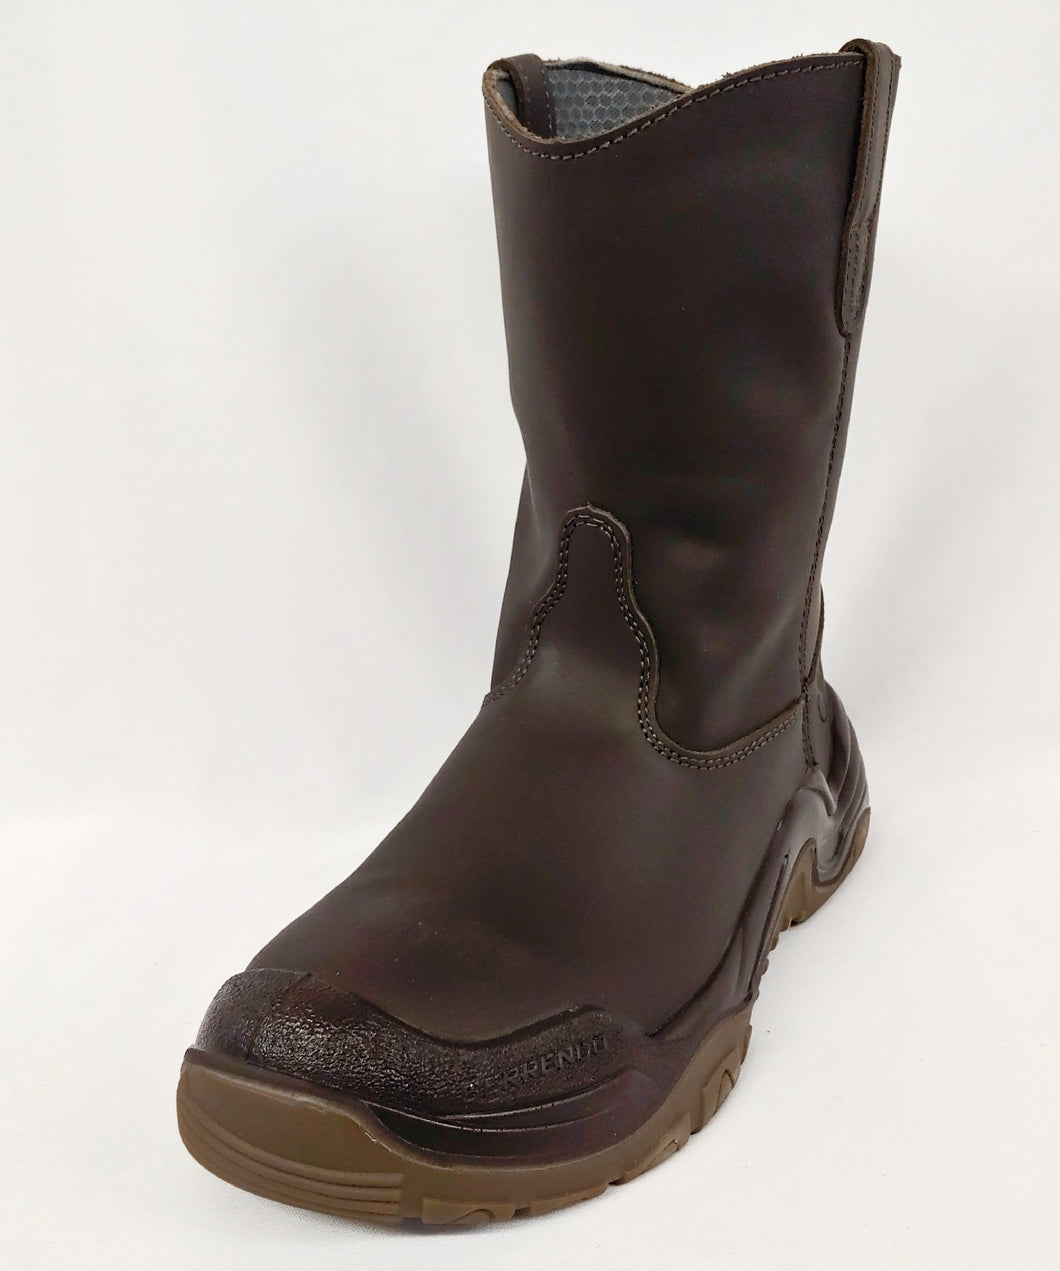 Berrendo® Mod# 3160 Steel Toe Boot